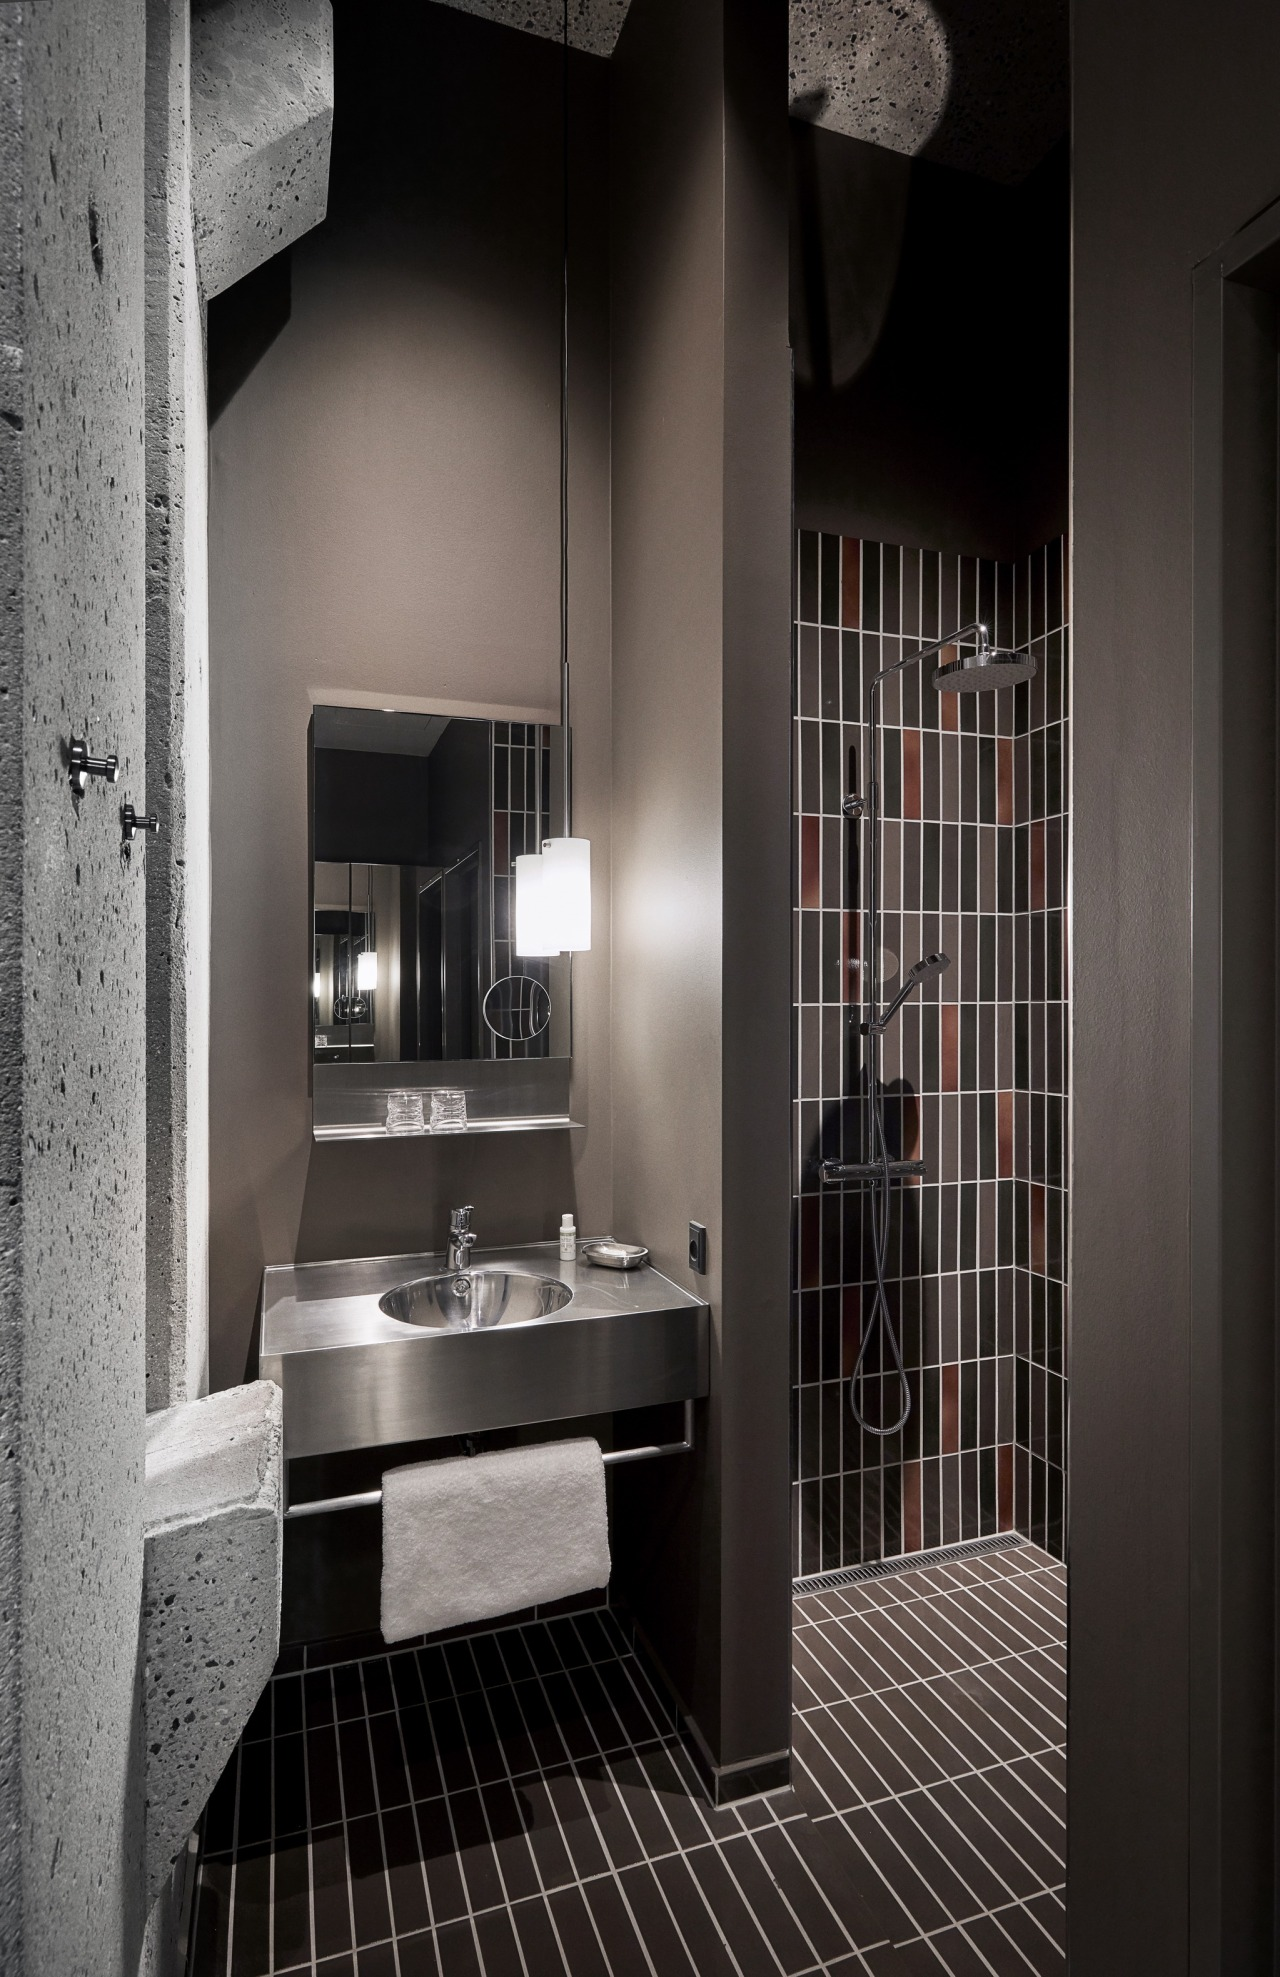 Concrete, tile and steel are combined to create architecture, bathroom, black, black-and-white, building, ceiling, floor, flooring, furniture, home, house, interior design, property, room, tile, black, gray